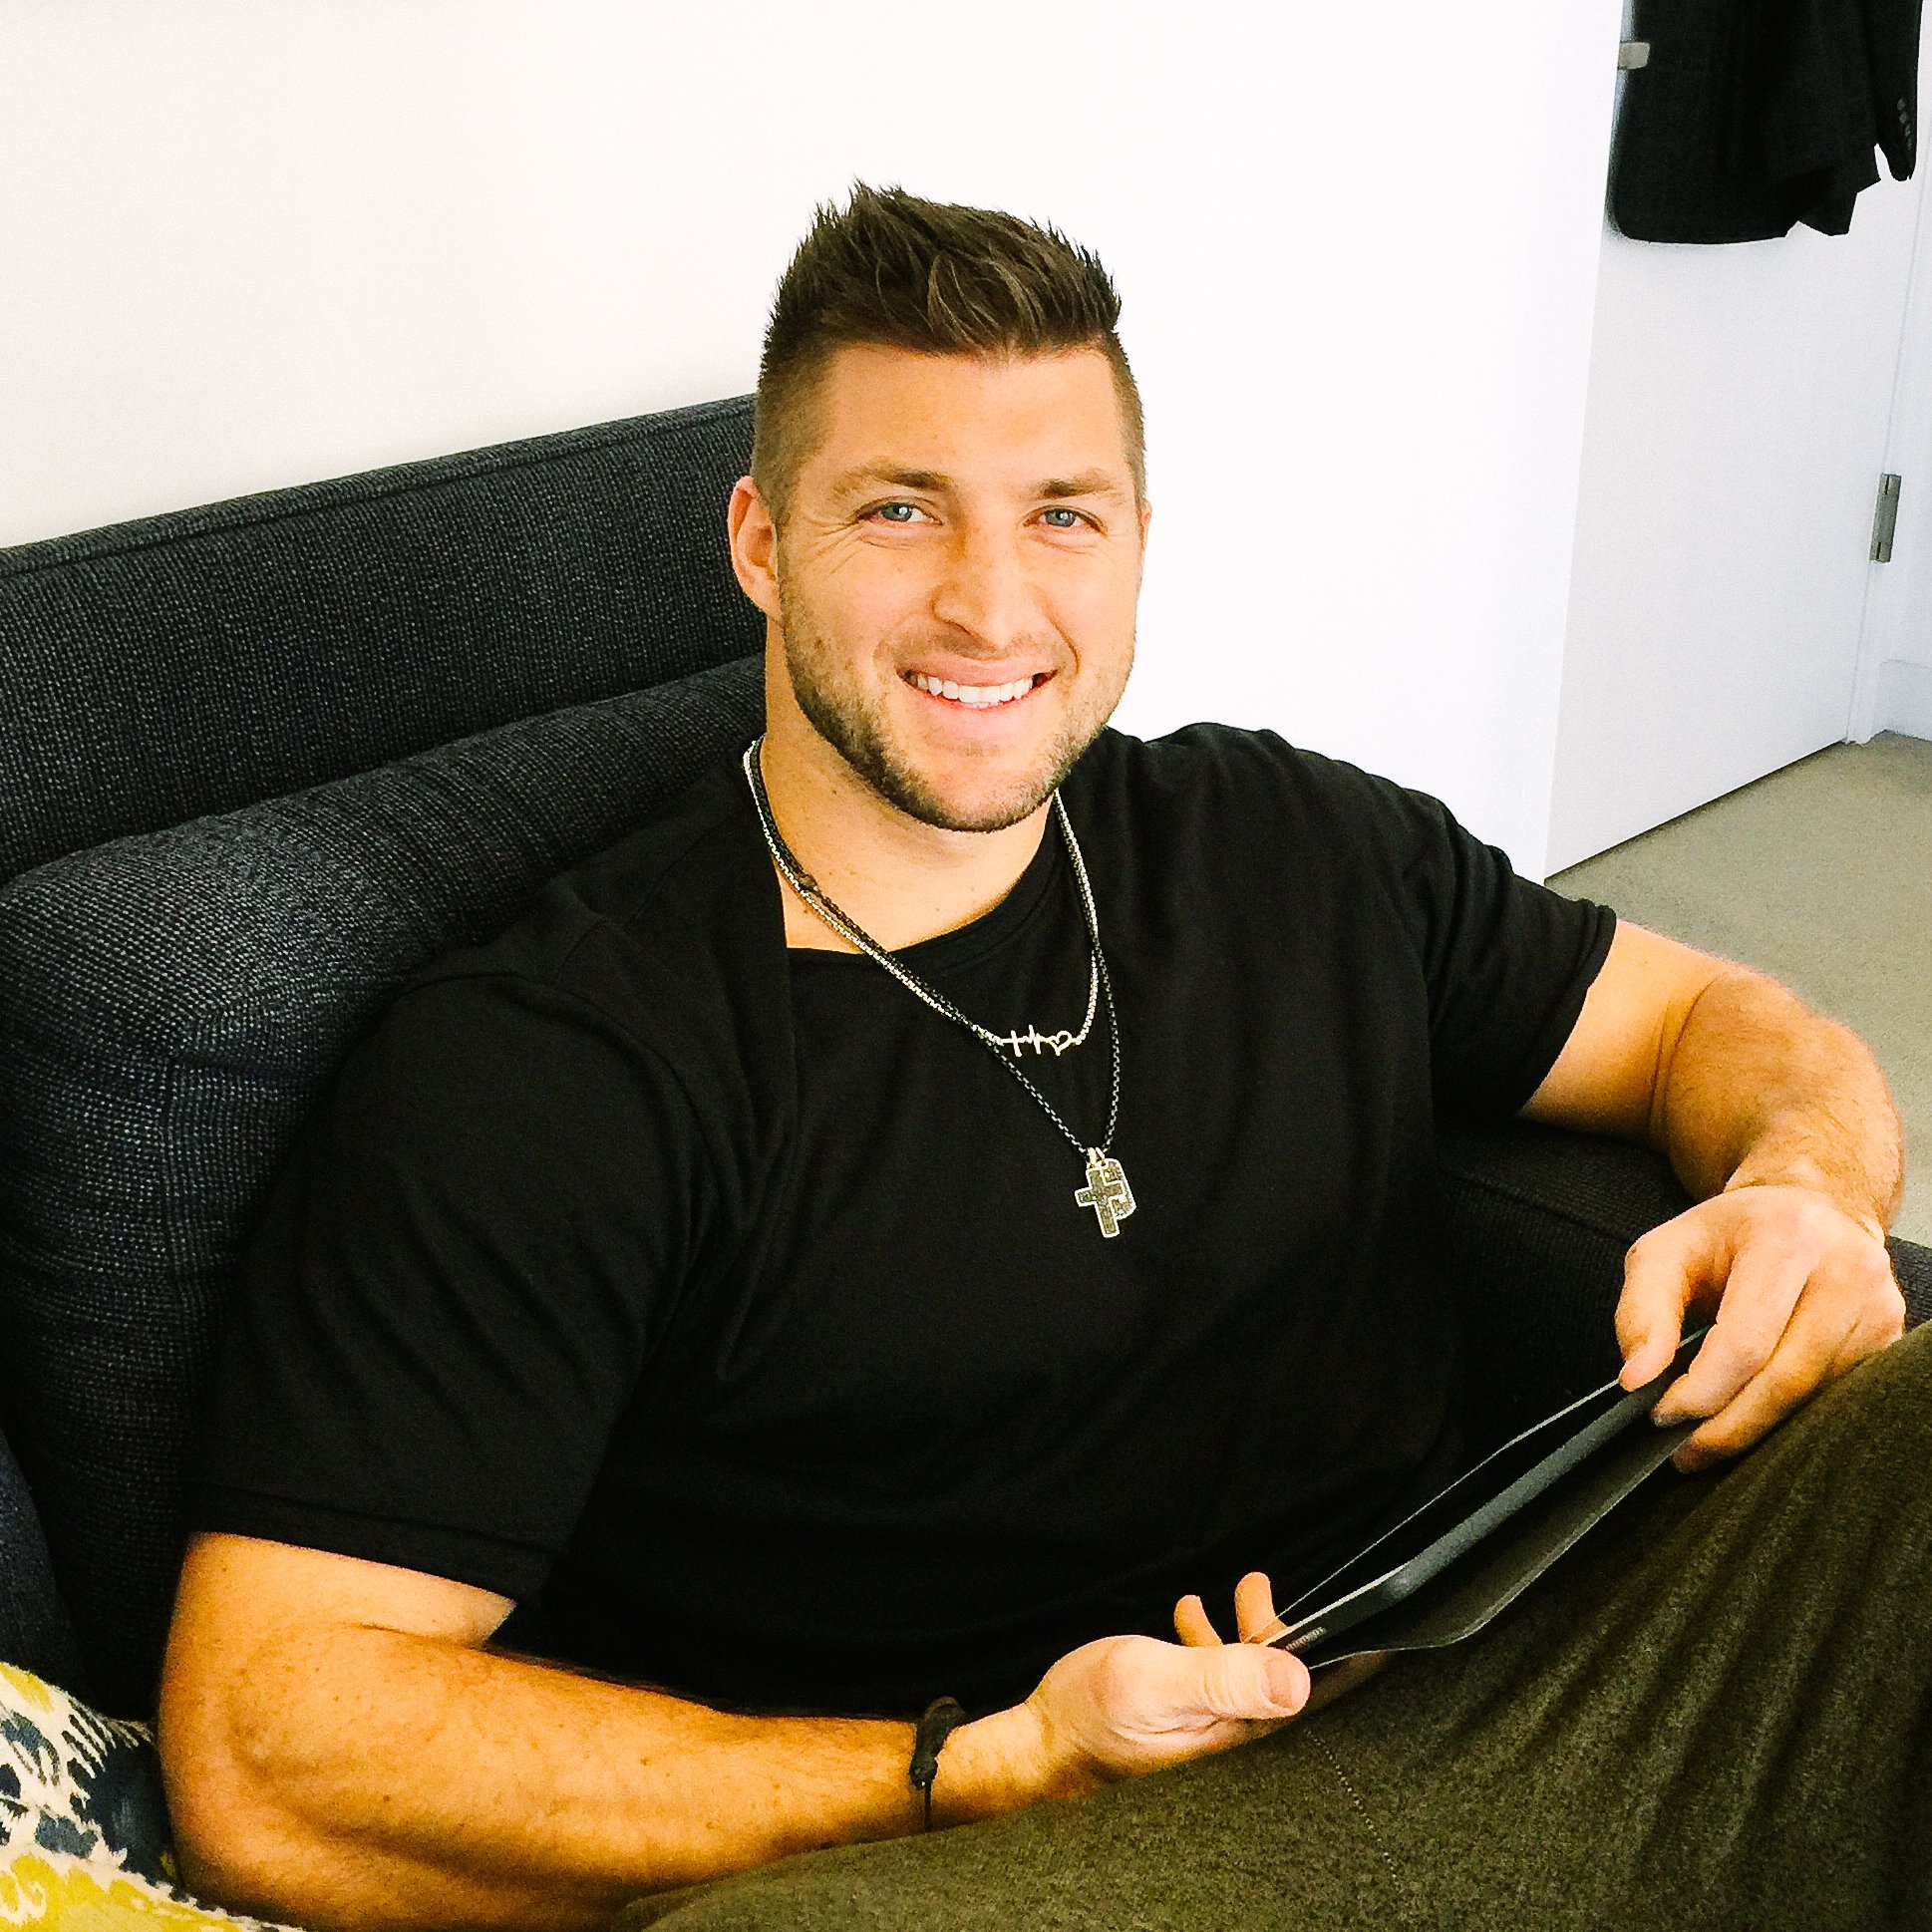 RT @TimTebow: Let's do this... Live chat with me now! I'm teaming w/ @Avosfrommexico & answering YOUR questions. Use #AvosInSpace https://t…